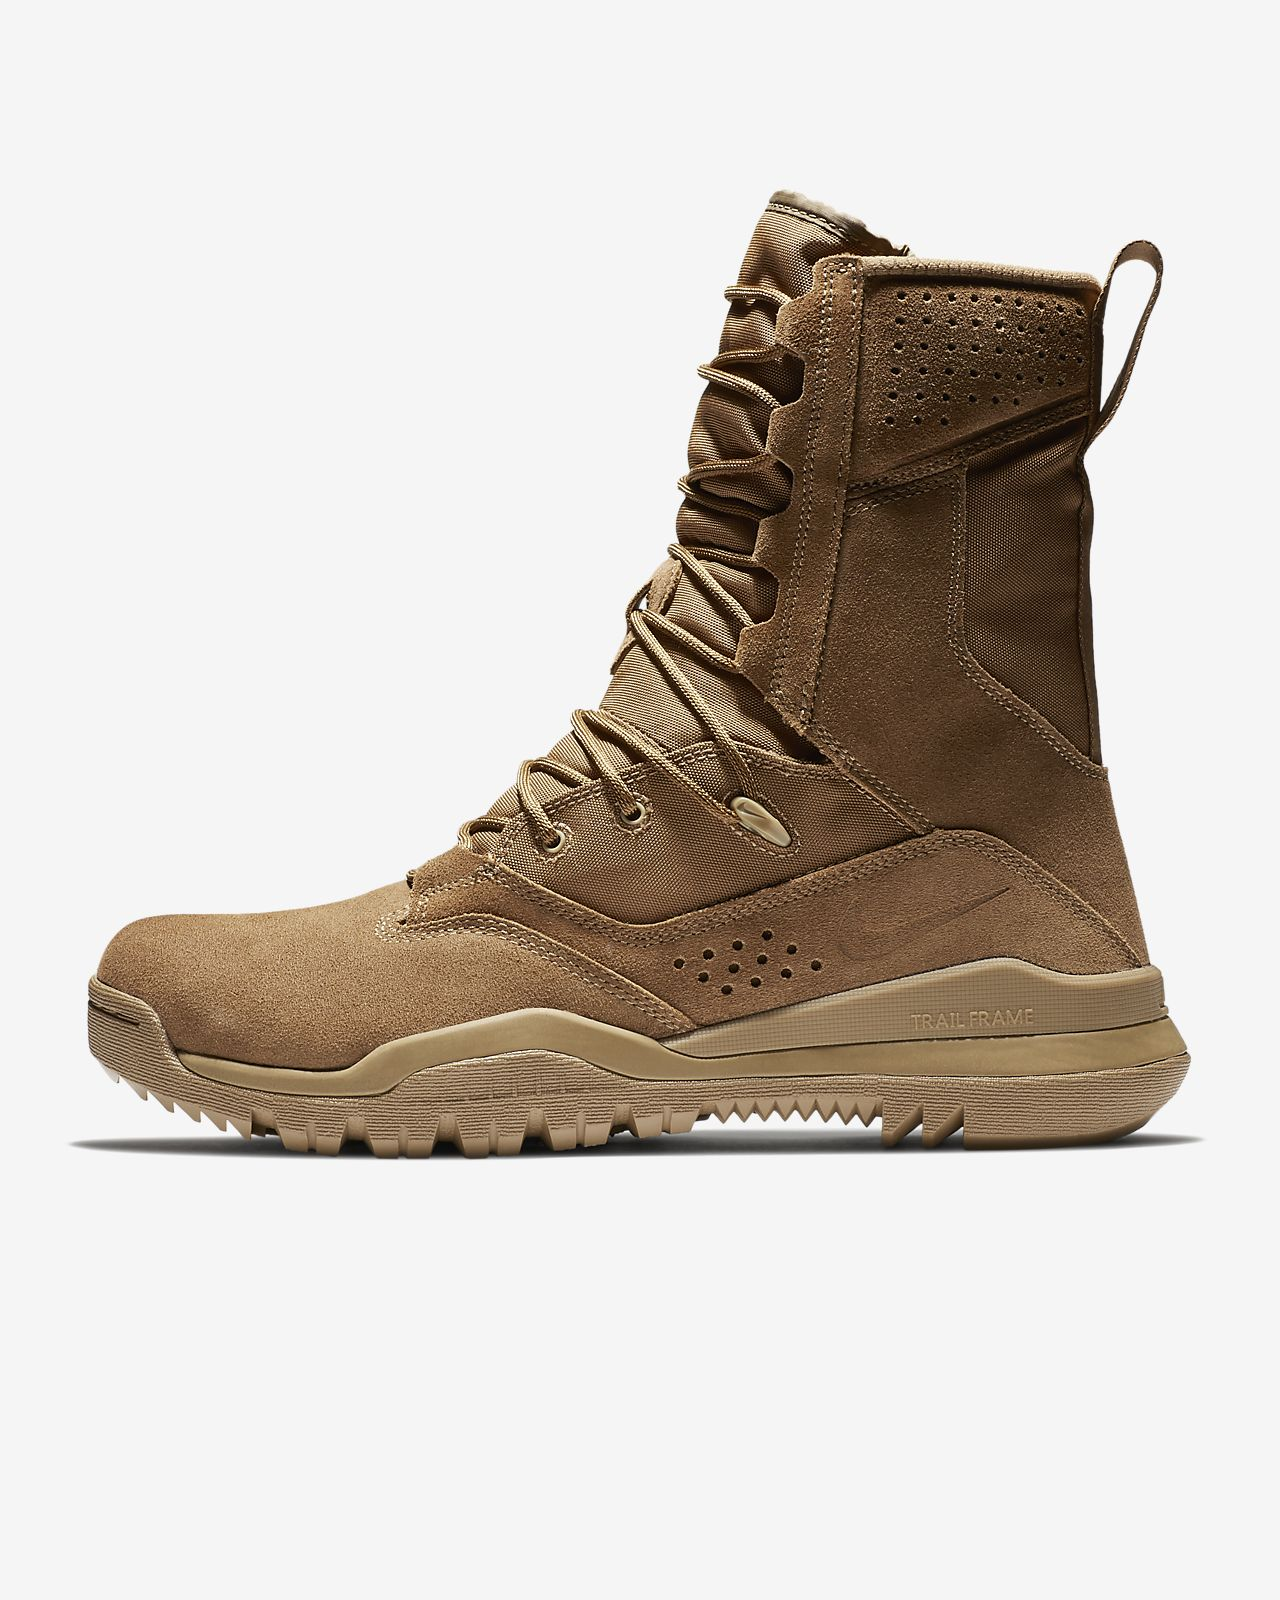 Nike SFB Field 2 Leather (ca. 20 cm) Tactical Stiefel